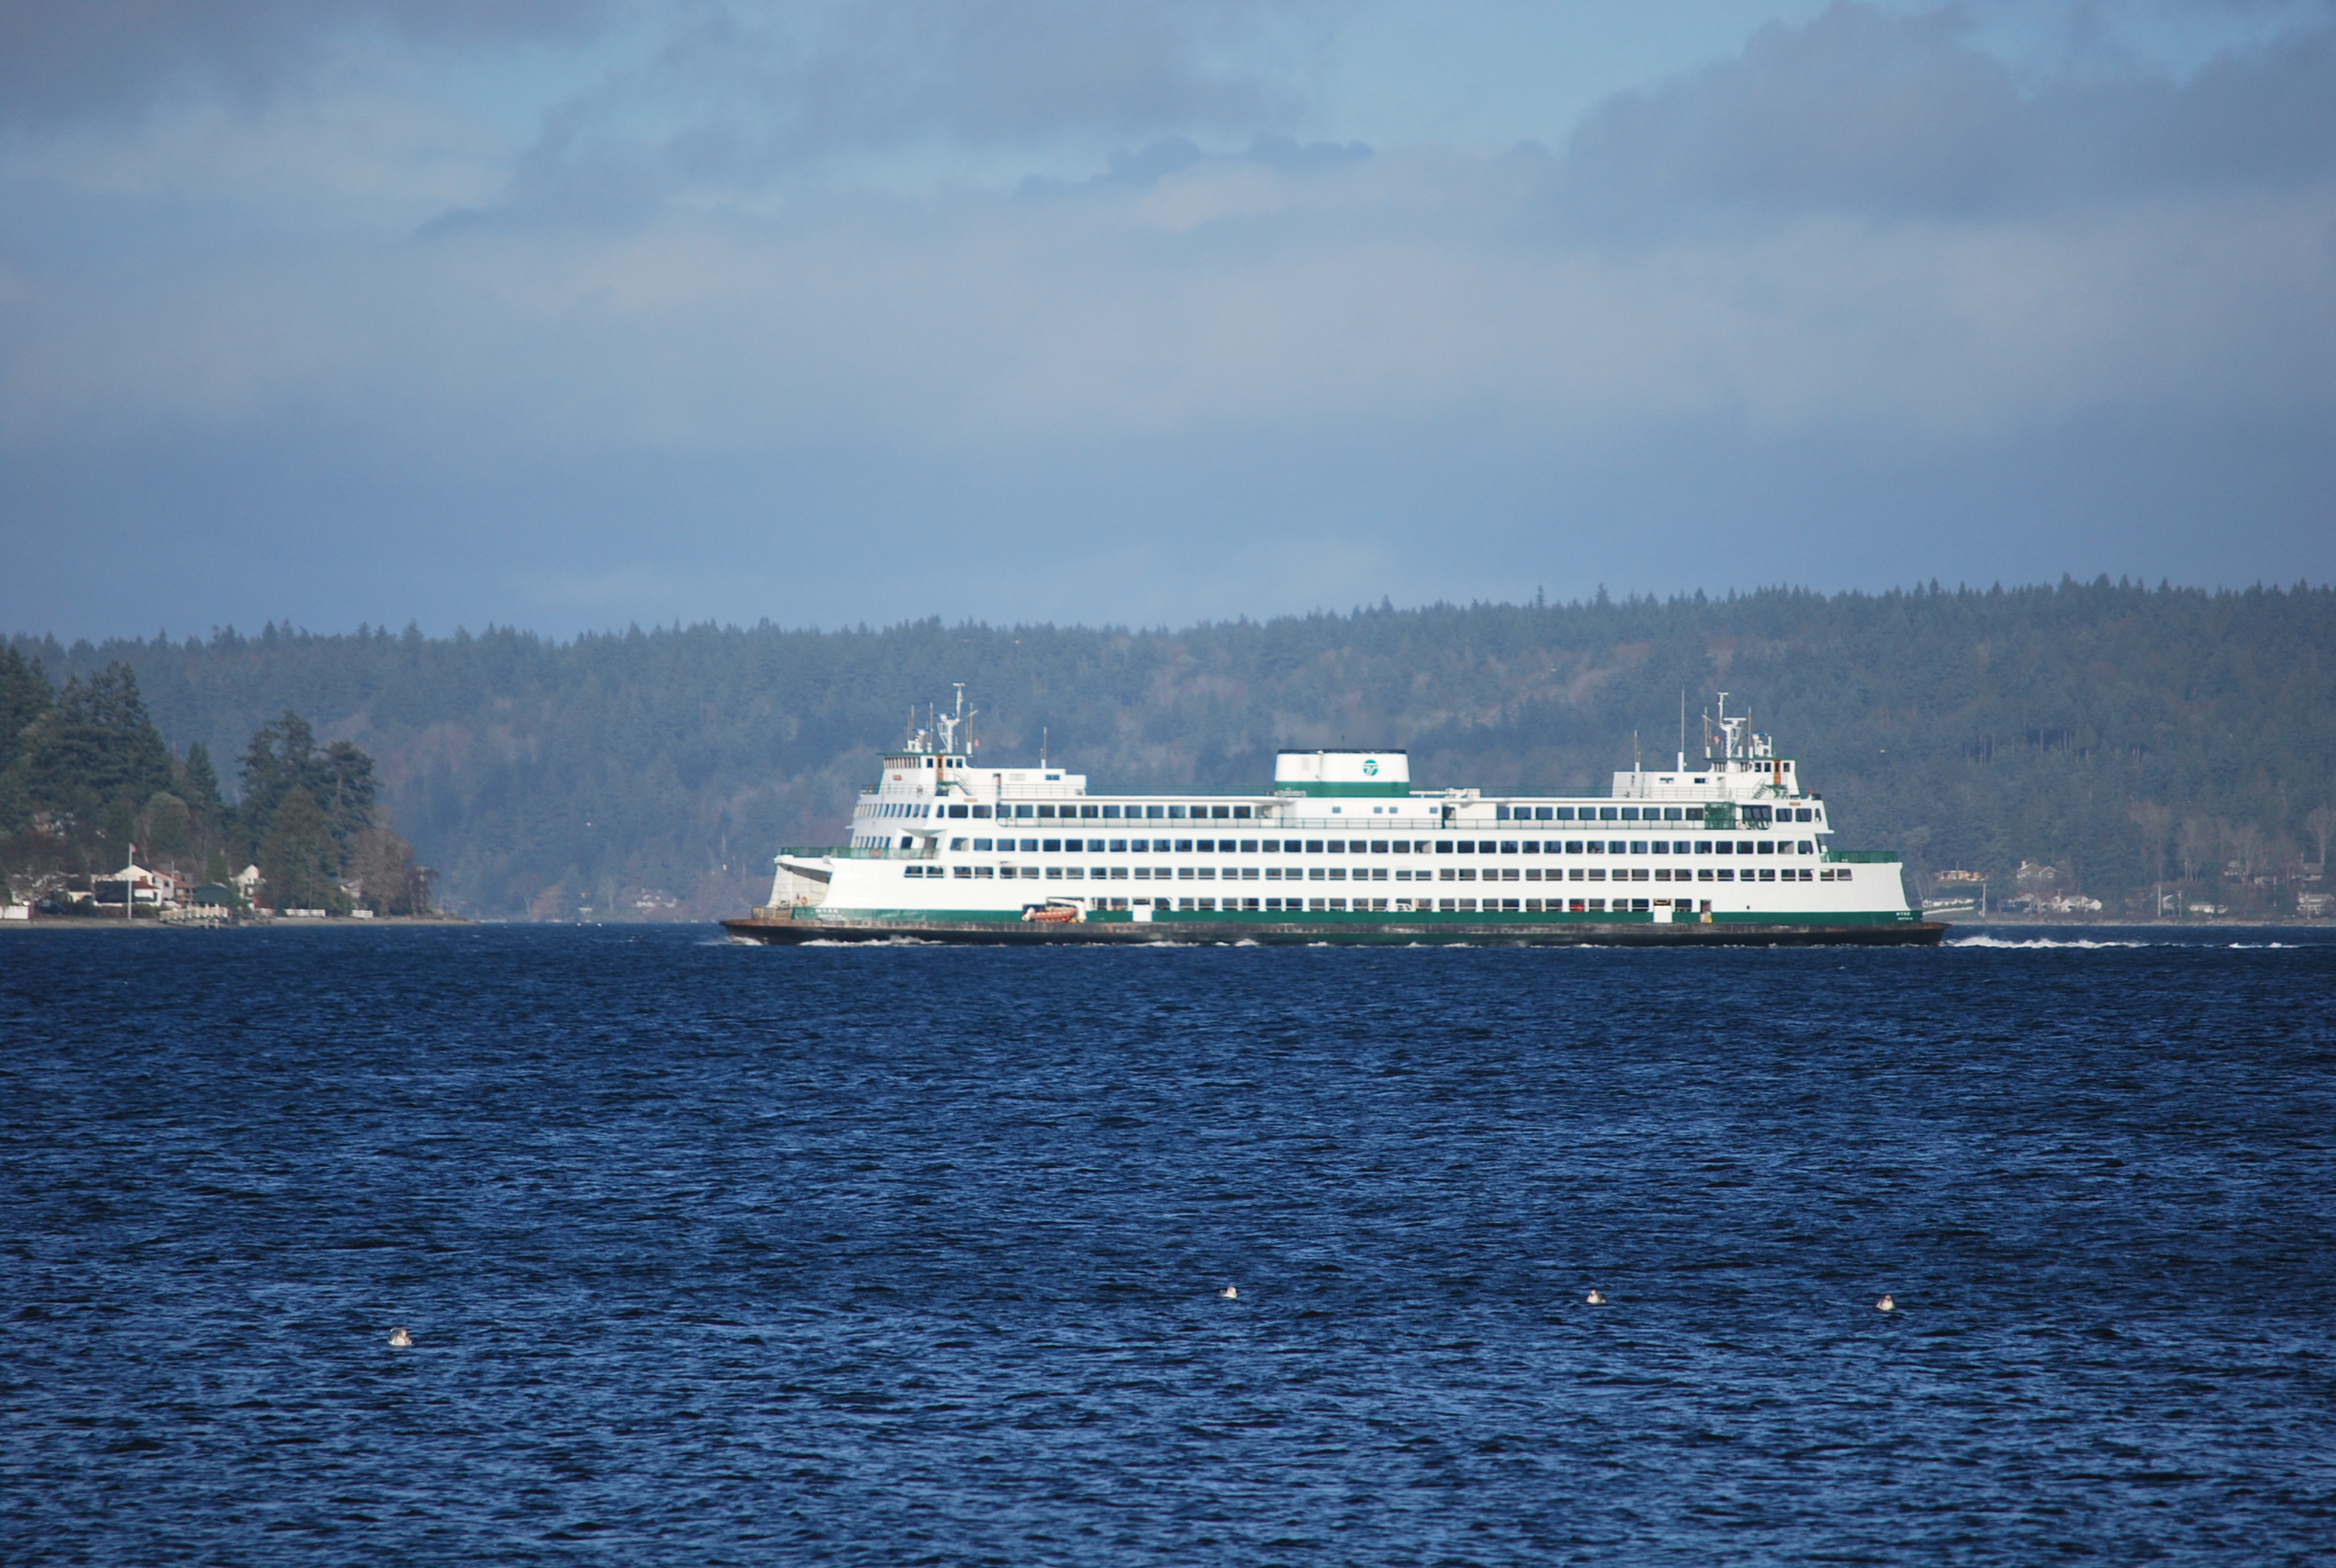 getting to port orchard by ferry